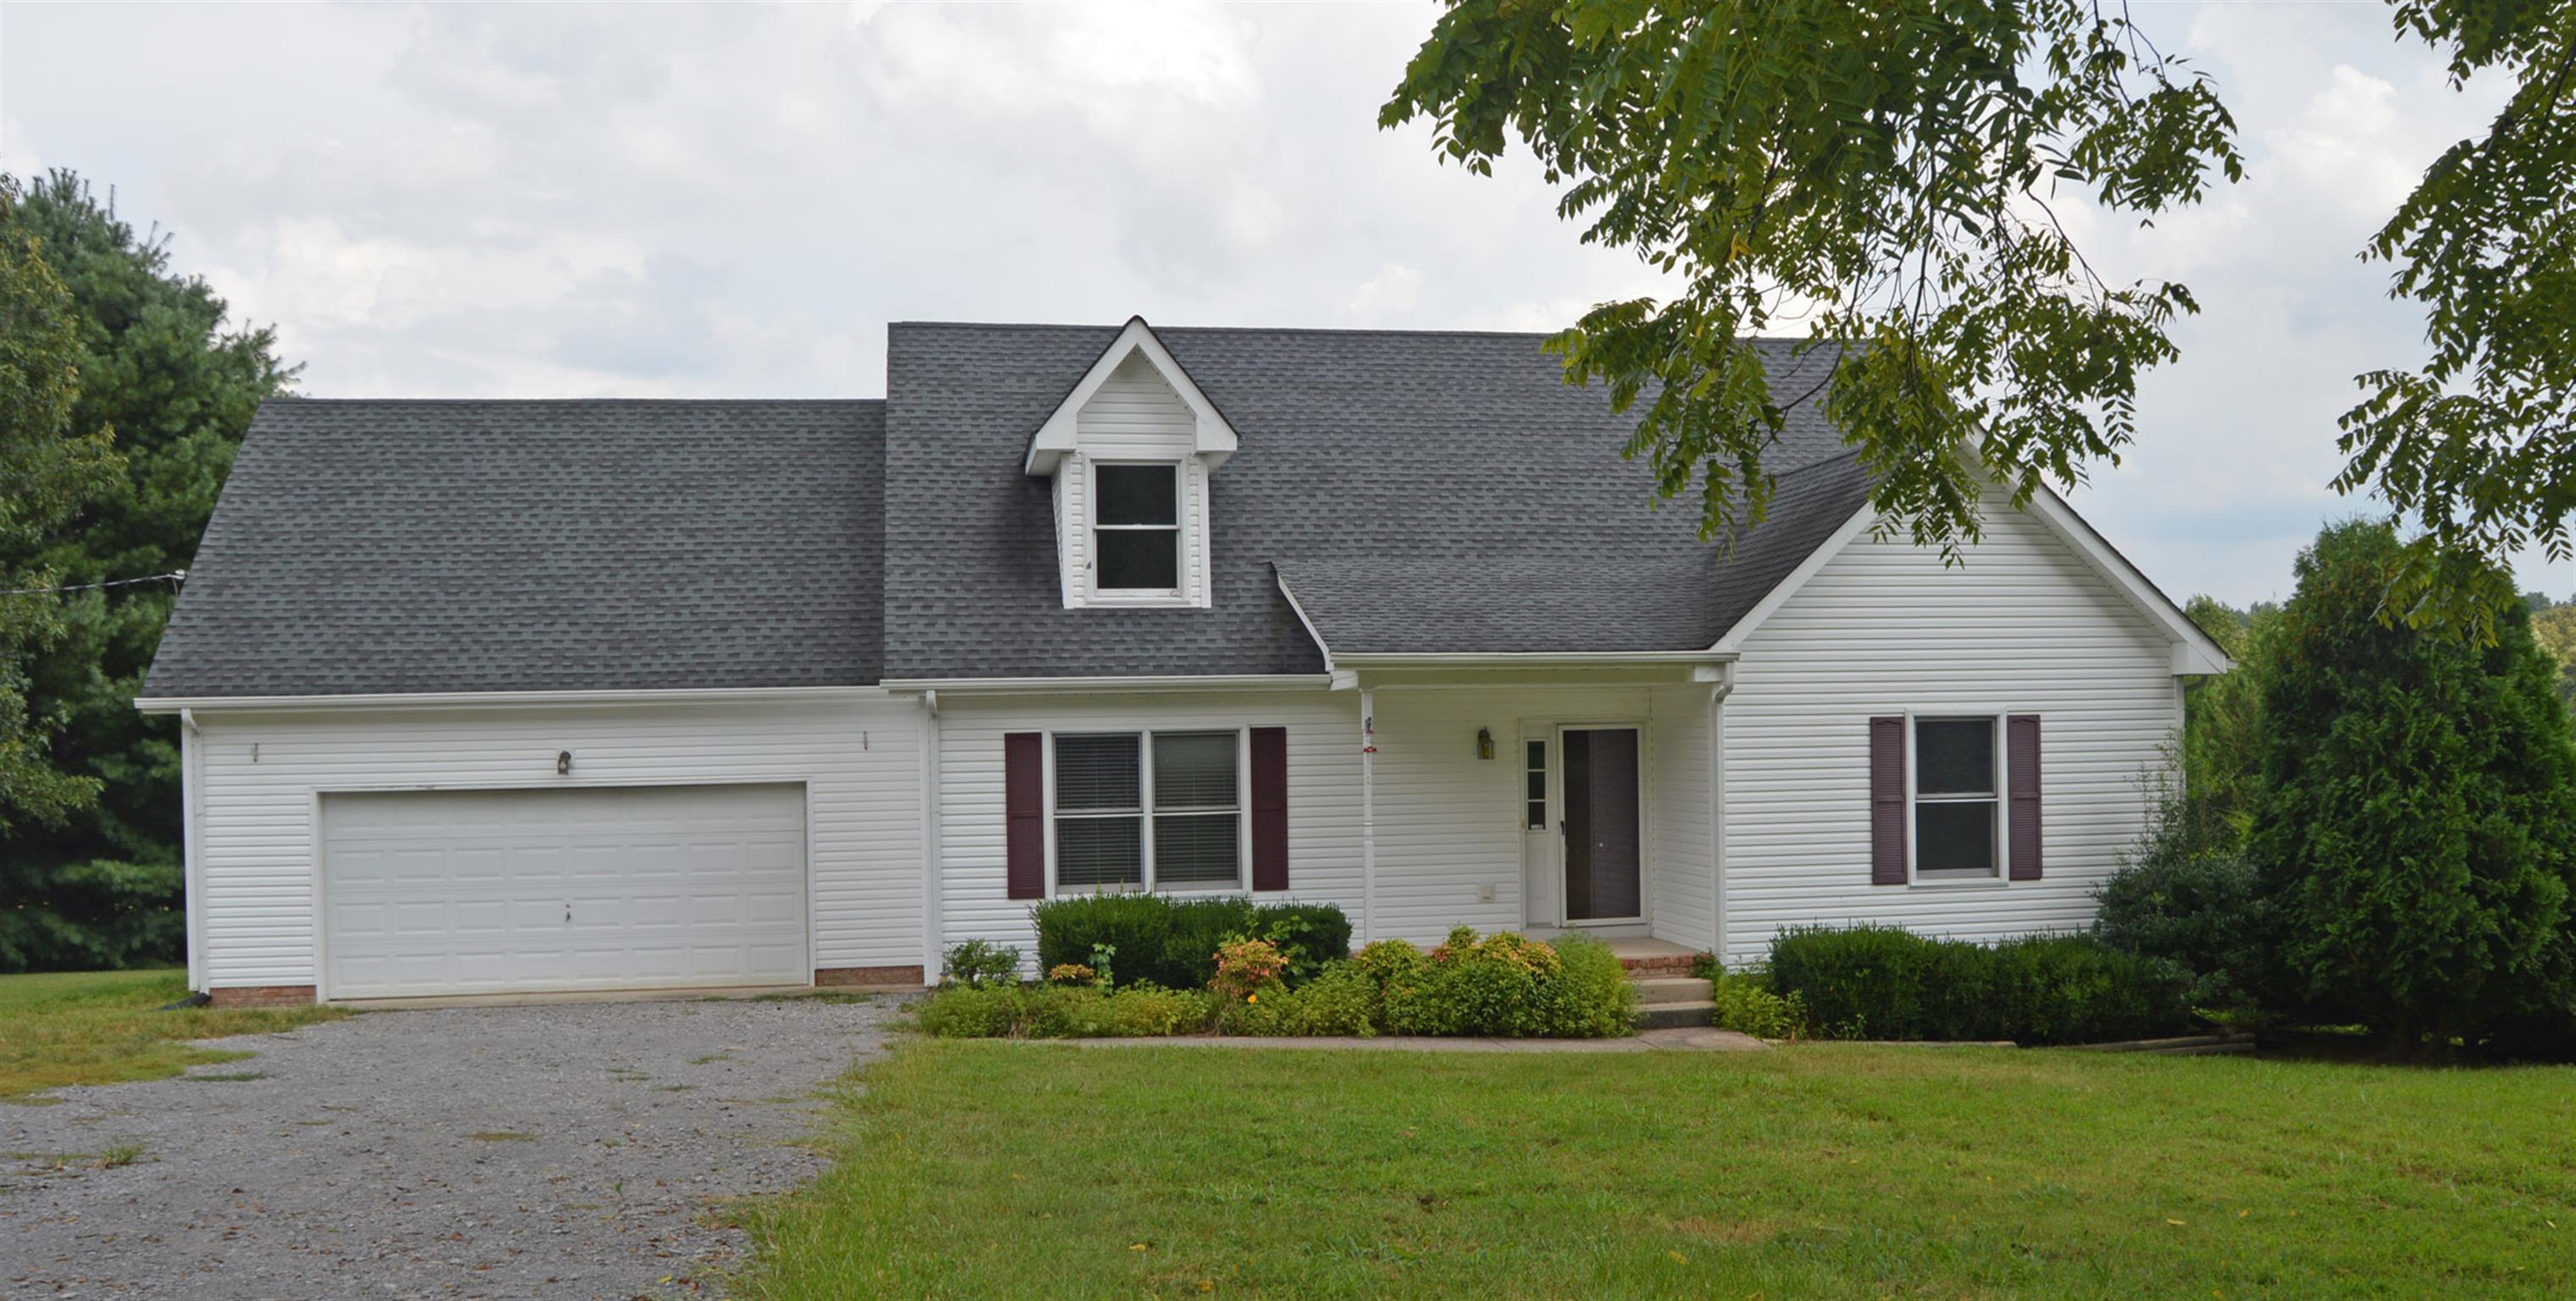 2711 CUNNINGHAM VIEW ROAD, Palmyra, TN 37142 - Palmyra, TN real estate listing